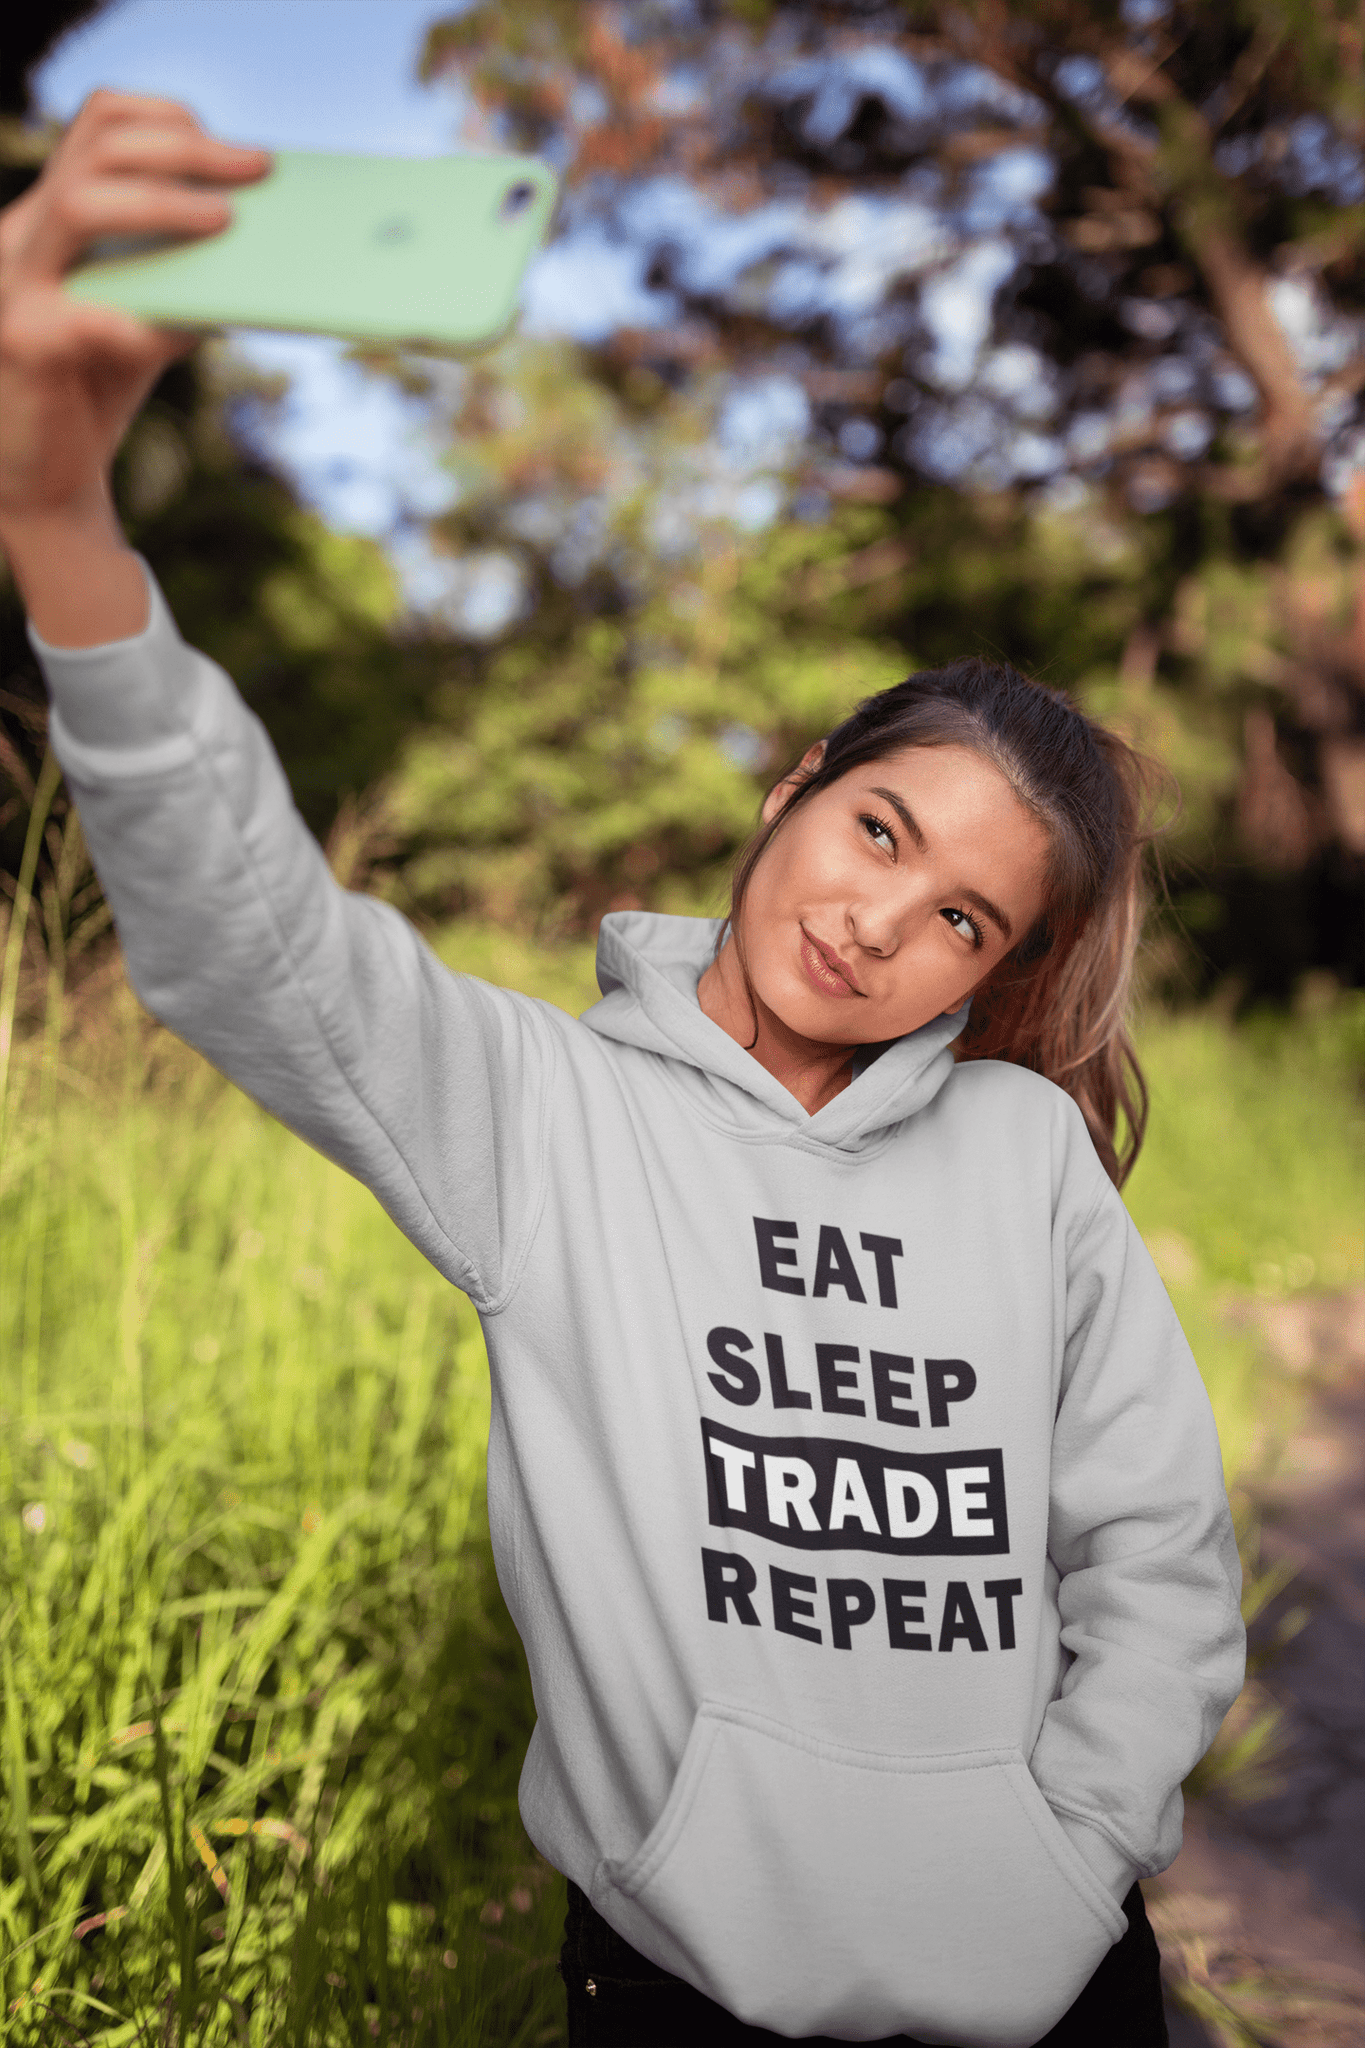 Forex Life 'Eat Sleep Trade Repeat' Womens Tradr. Hoody - Hoody's - TRADR. Clothing